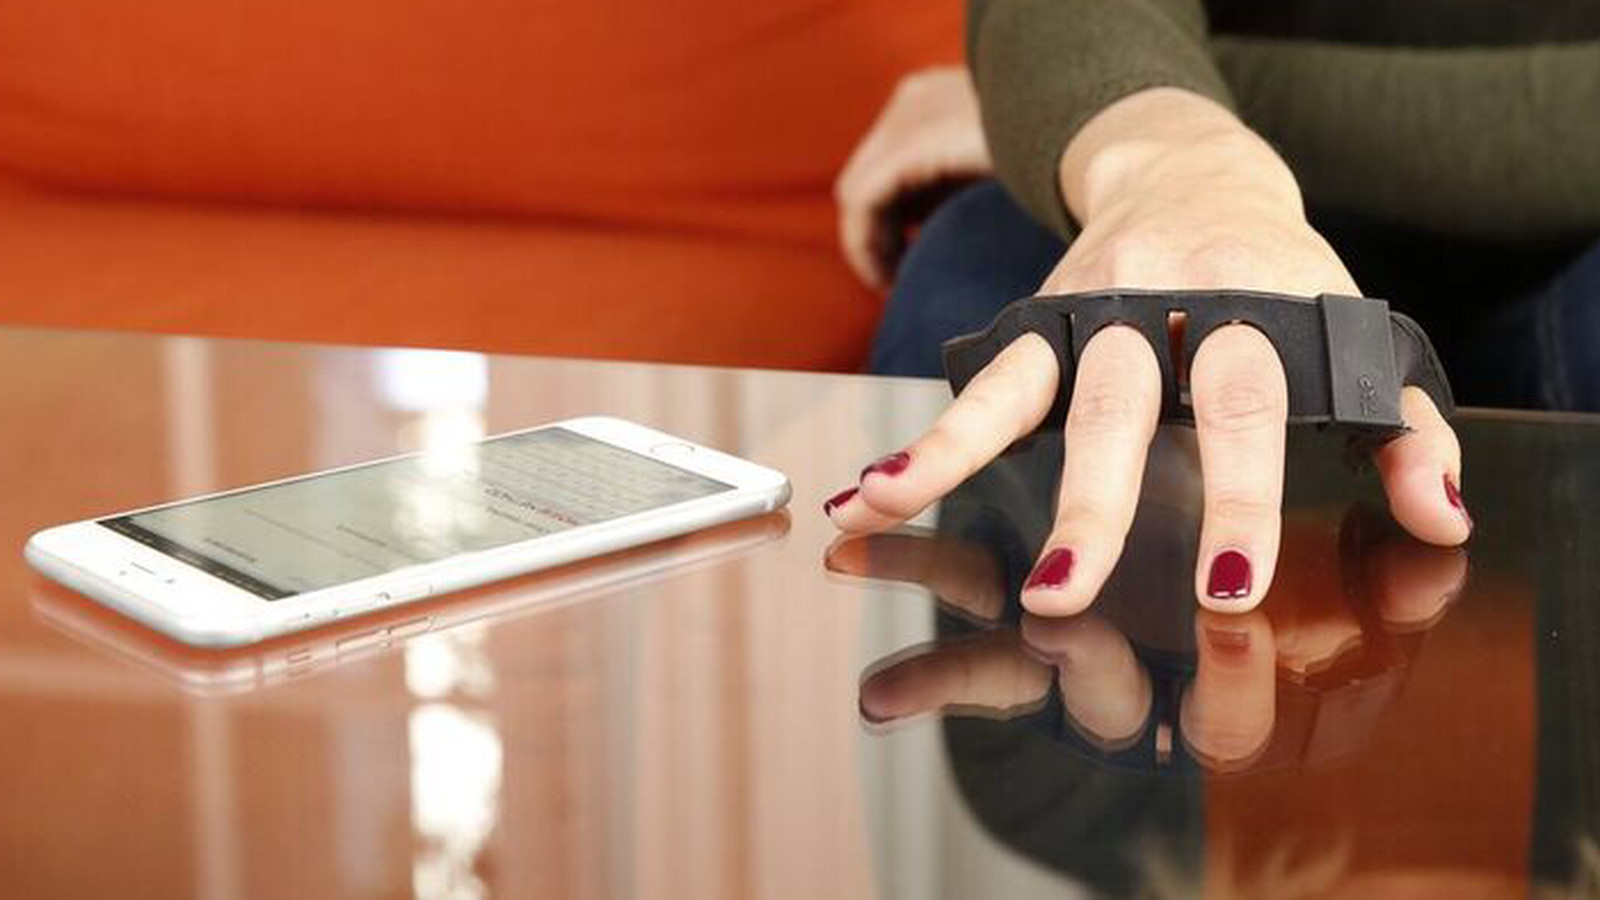 Tap Strap Wearable Keyboard Uses Gestures To Type On Any